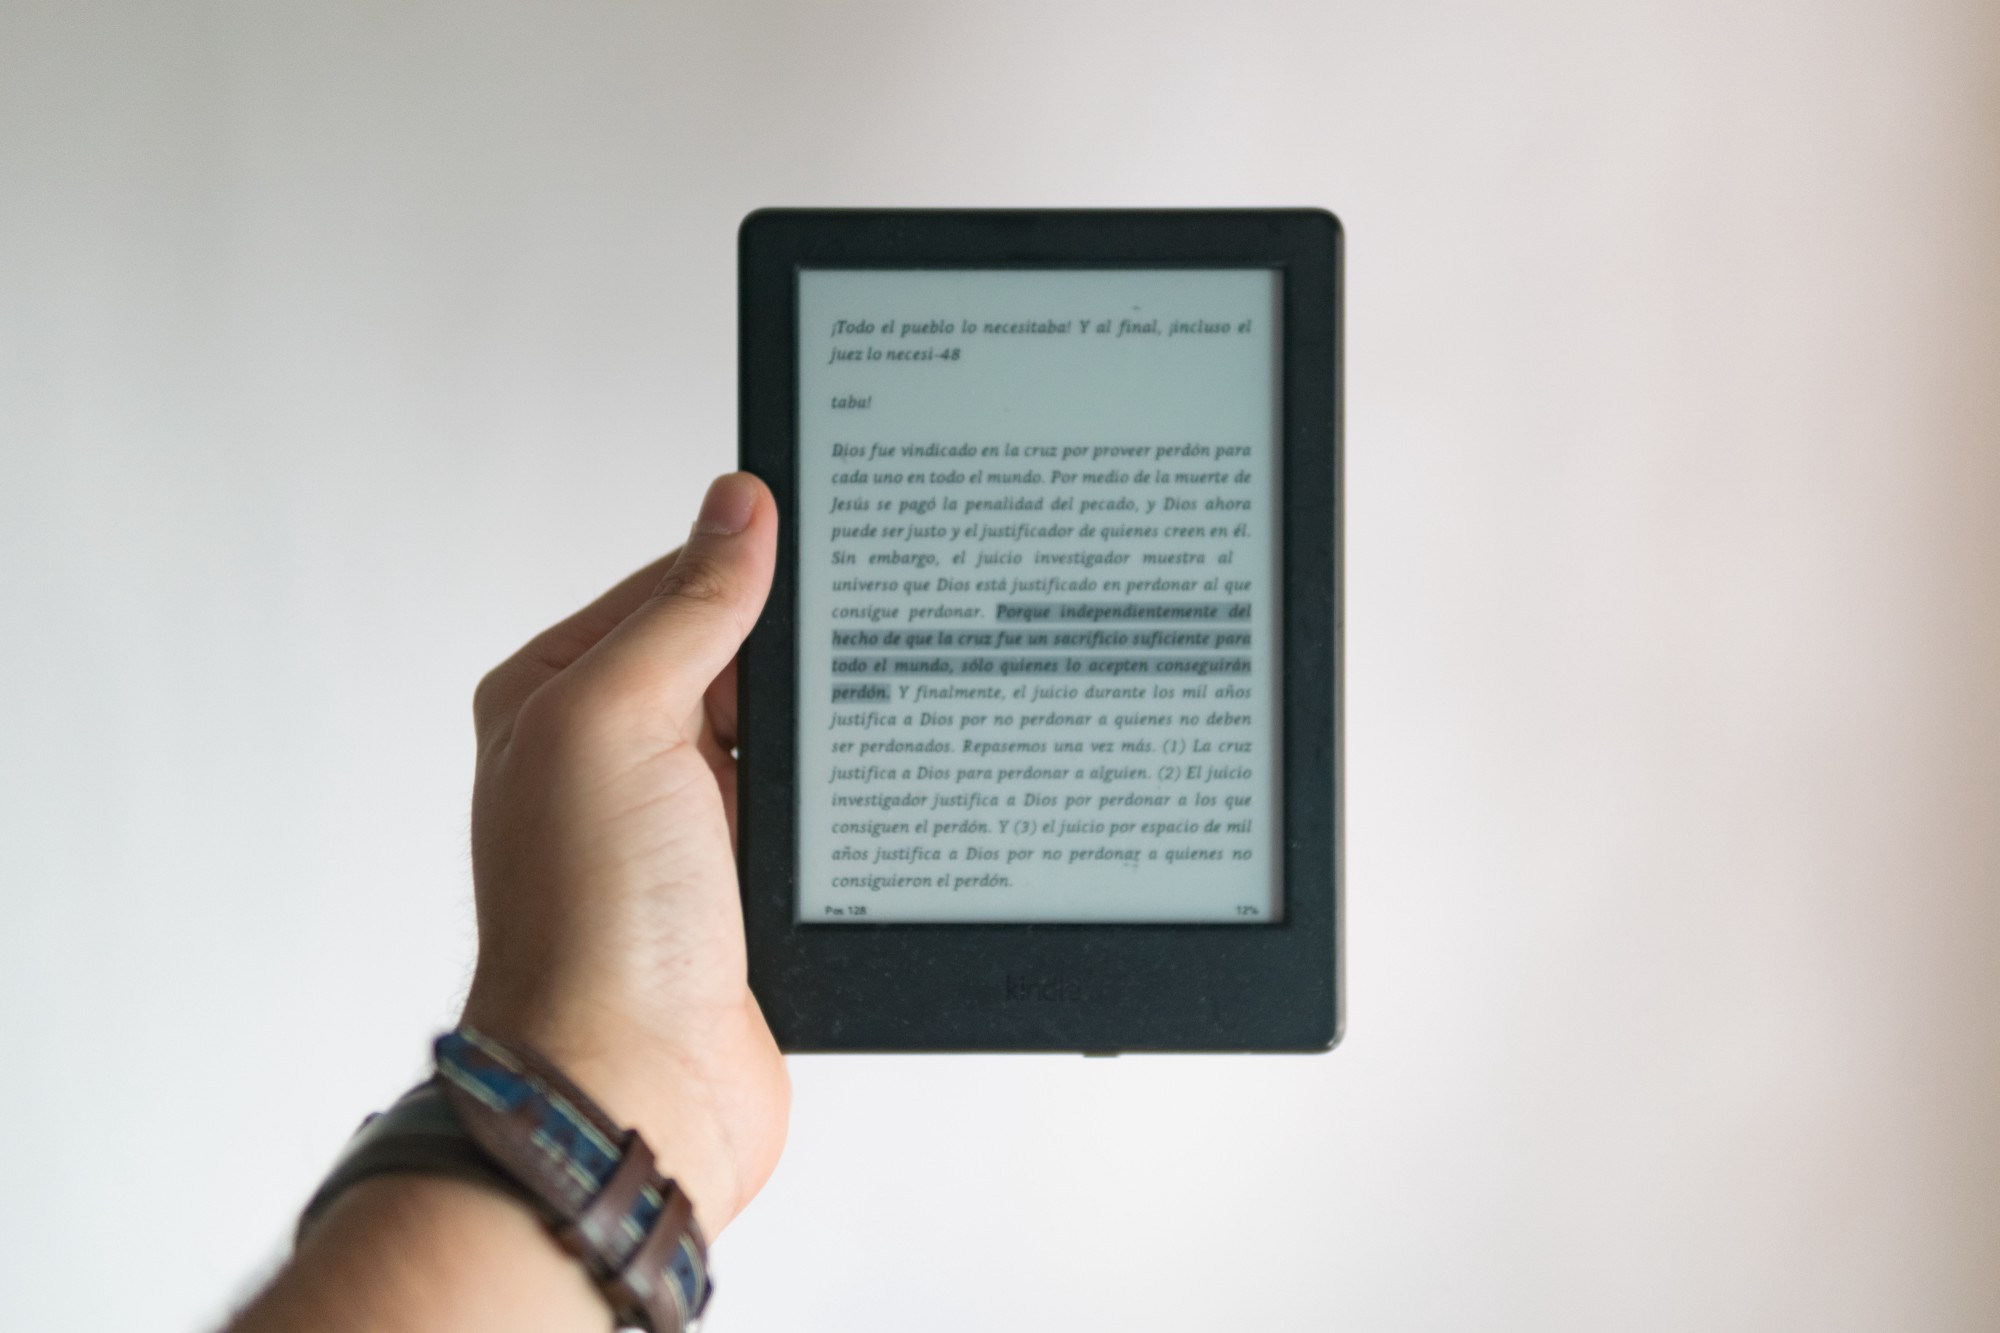 A stretched-out hand holding a Kindle eReader.